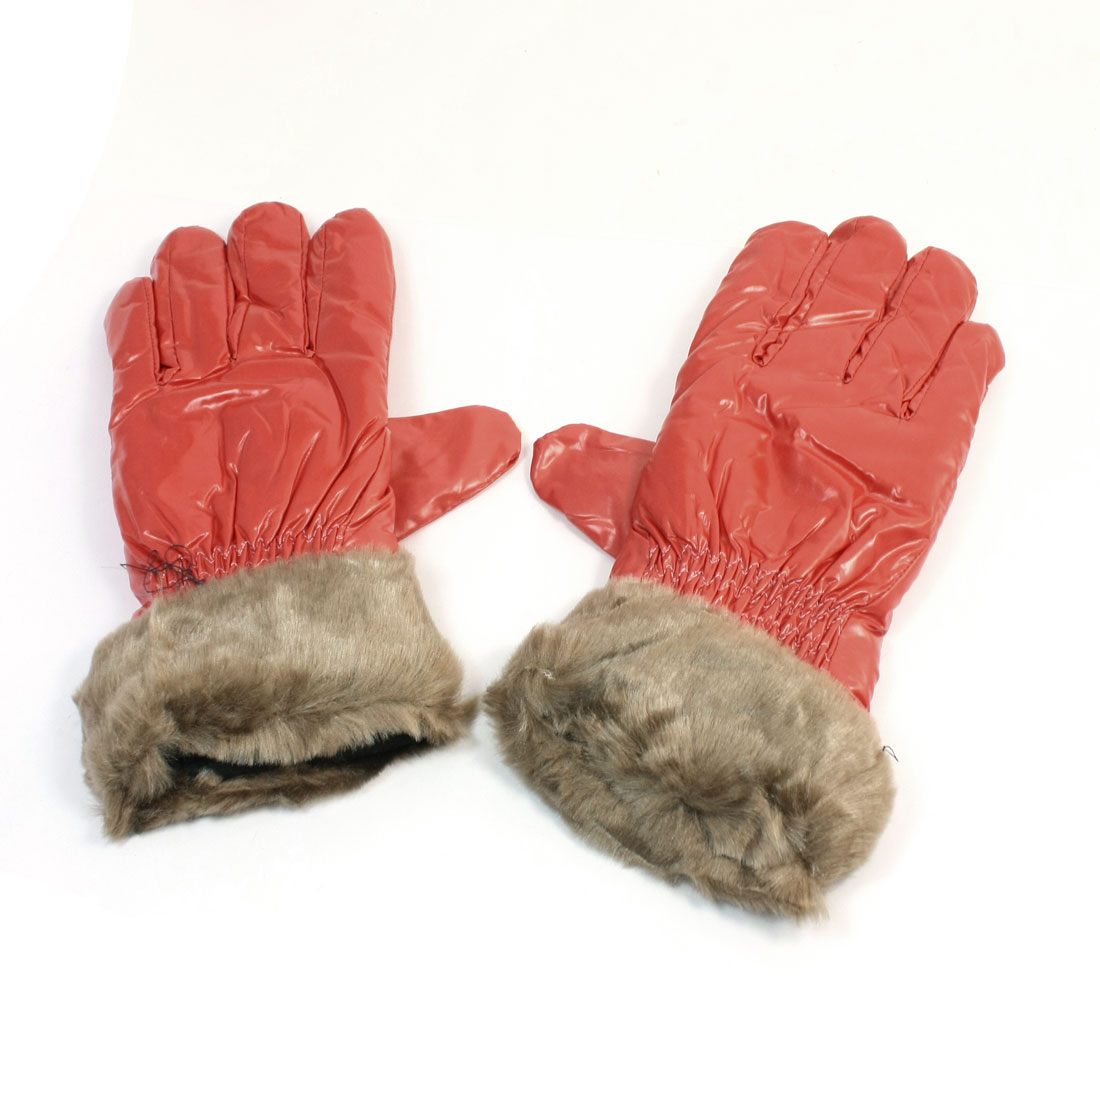 Adult Orange Brown Faux Leather Fleece Hand Warming Full Fingers Winter Gloves